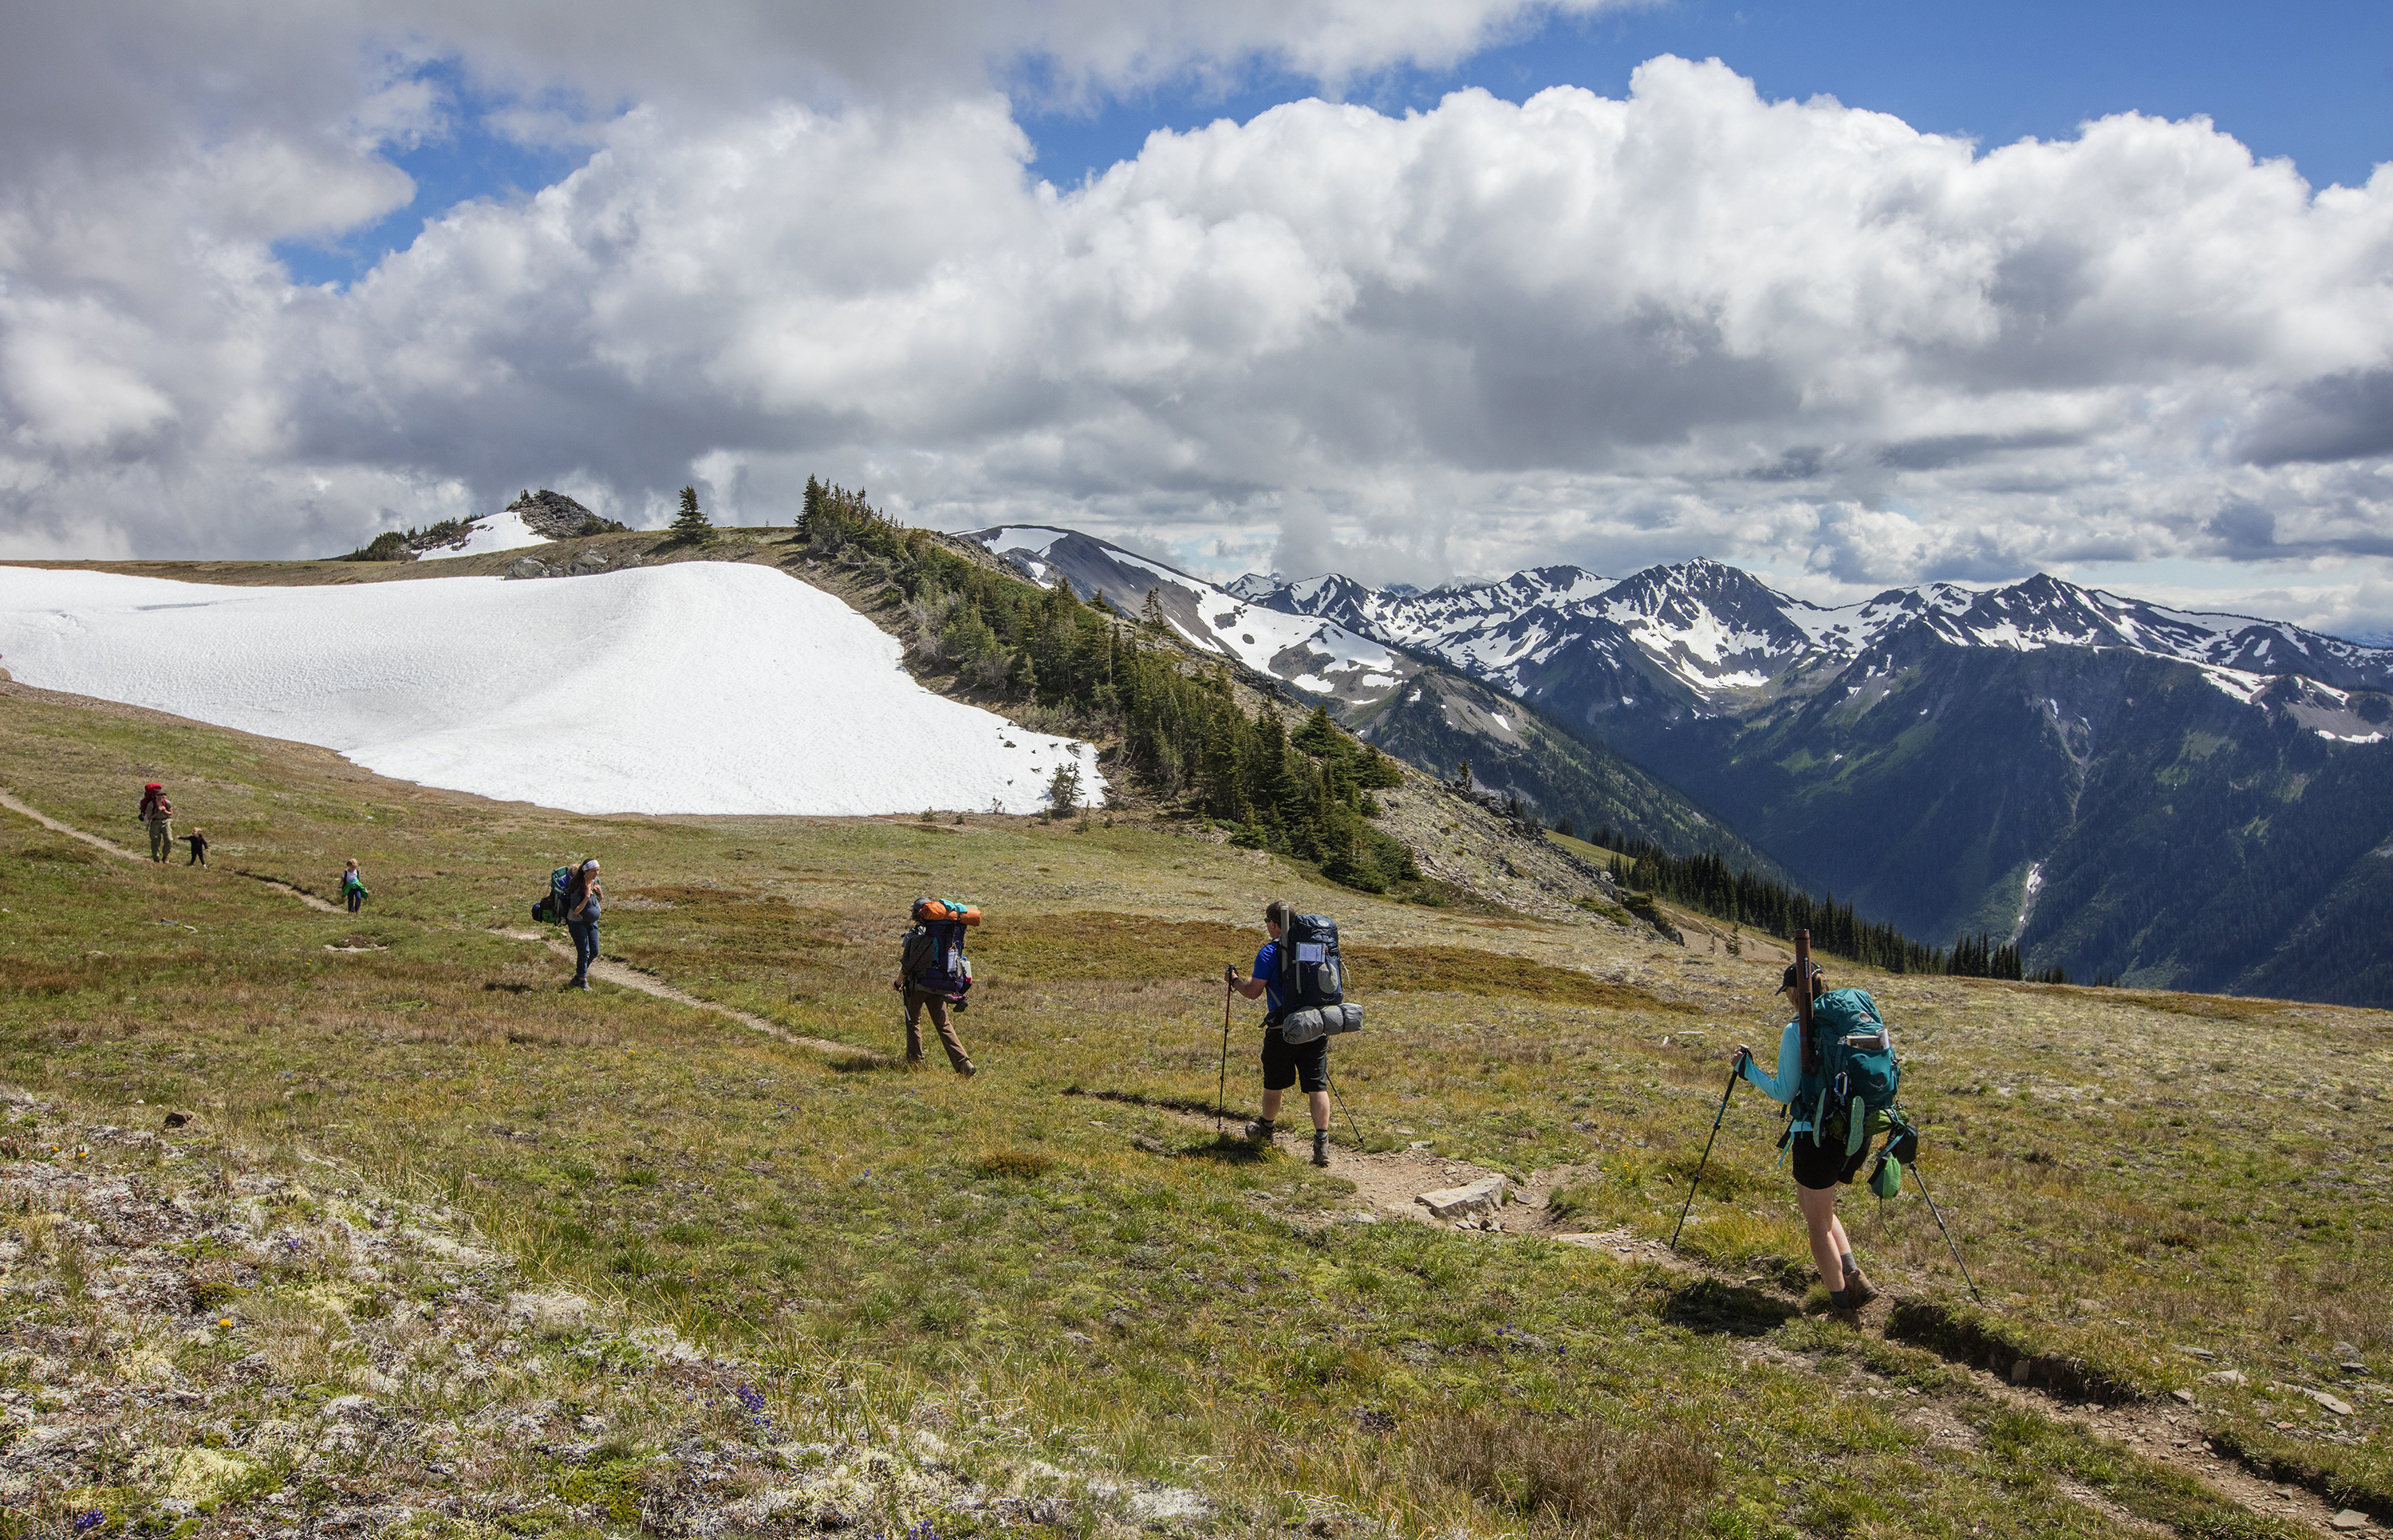 """Just like any sport there is inherent risk to hiking, but there's definitely things you can do to mitigate those risks,"" says Kindra Ramos, director of communications at the Washington Trails Association (WTA). Ramos' words are worth considering if, like the hikers pictured above in Olympic National Park, you're drawn to outdoor adventures. (Steve Ringman / Seattle Times/TNS) OUTS: SEATTLE OUT, USA TODAY OUT, MAGAZINES OUT, TELEVISION OUT, SALES OUT. MANDATORY CREDIT TO: STEVE RINGMAN / THE SEATTLE TIMES."